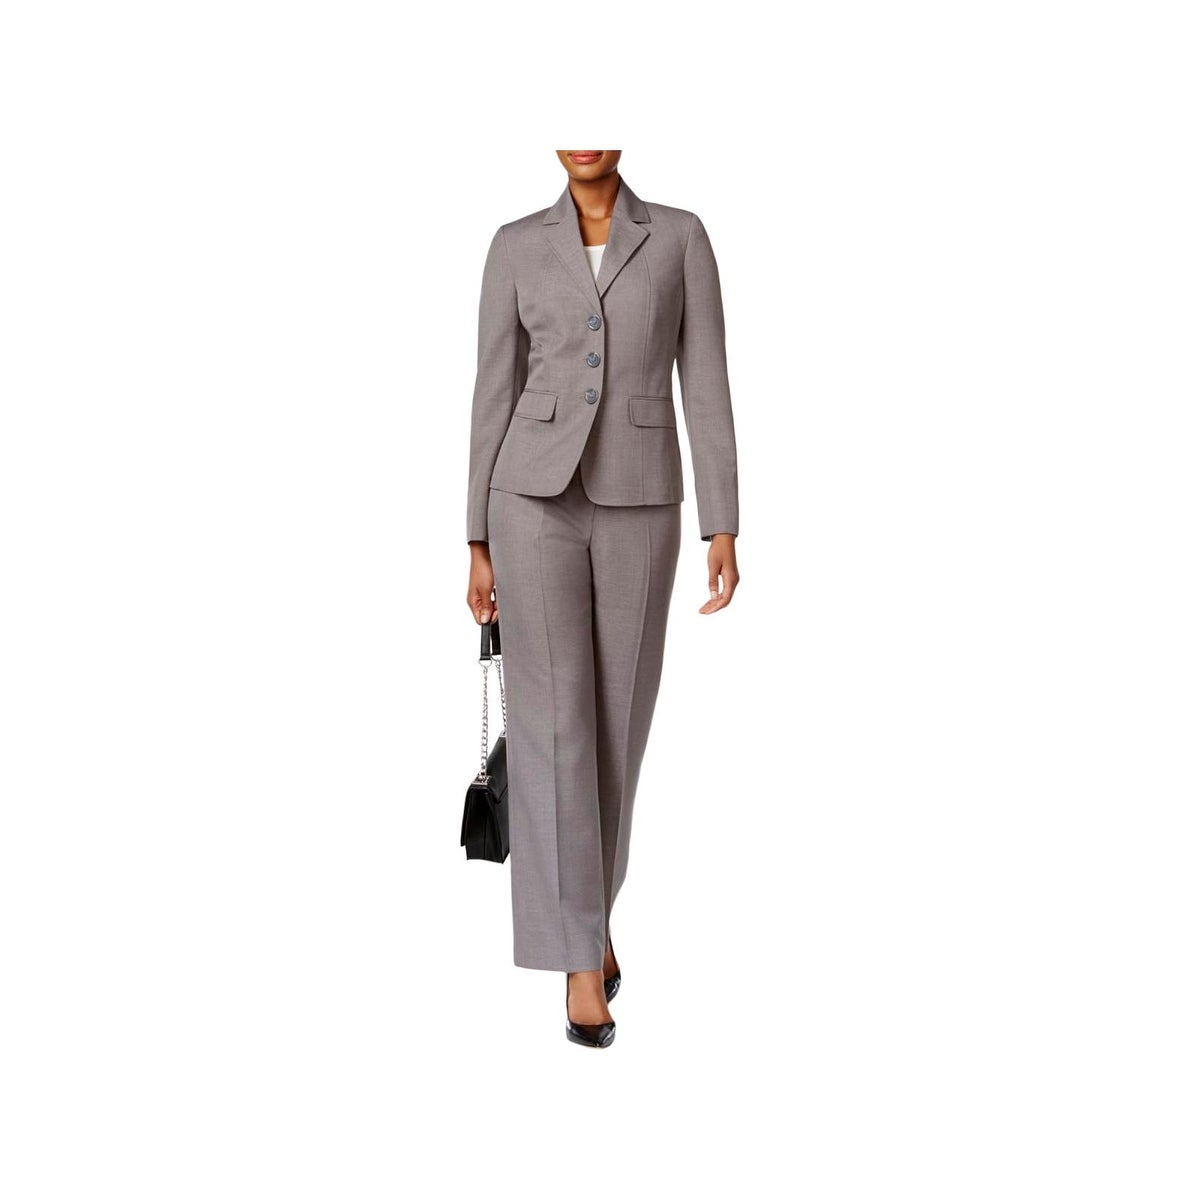 Suits & Sets Fashion Dark Blue Blazer Women Business Suits Formal Office Suits Work Wear Pant And Jacket Sets Beauty Salon Uniforms Delicacies Loved By All Pant Suits